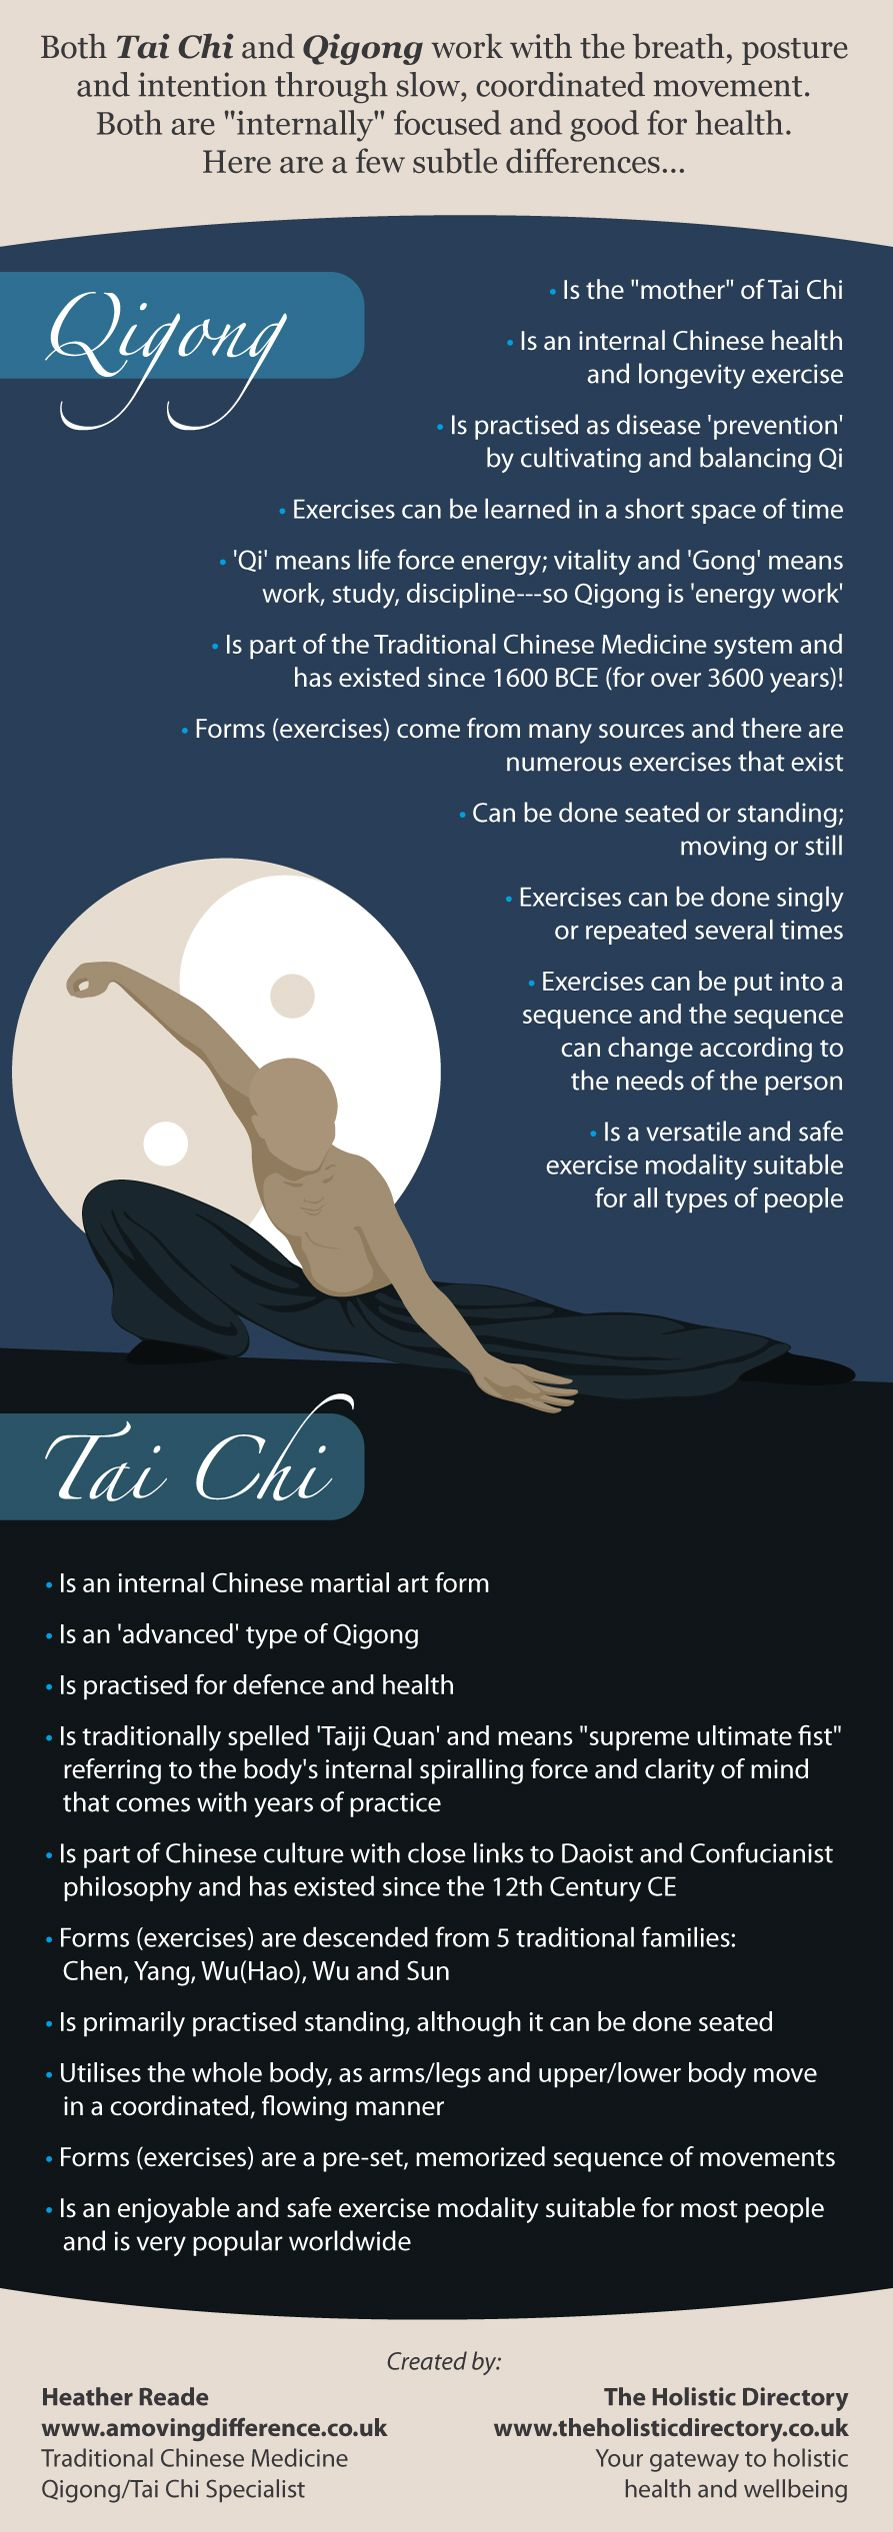 Qigong Or Tai Chi What S The Difference By The Holistic Directory Learn More Drmalikov Com Tai Chi Qigong Tai Chi Qigong